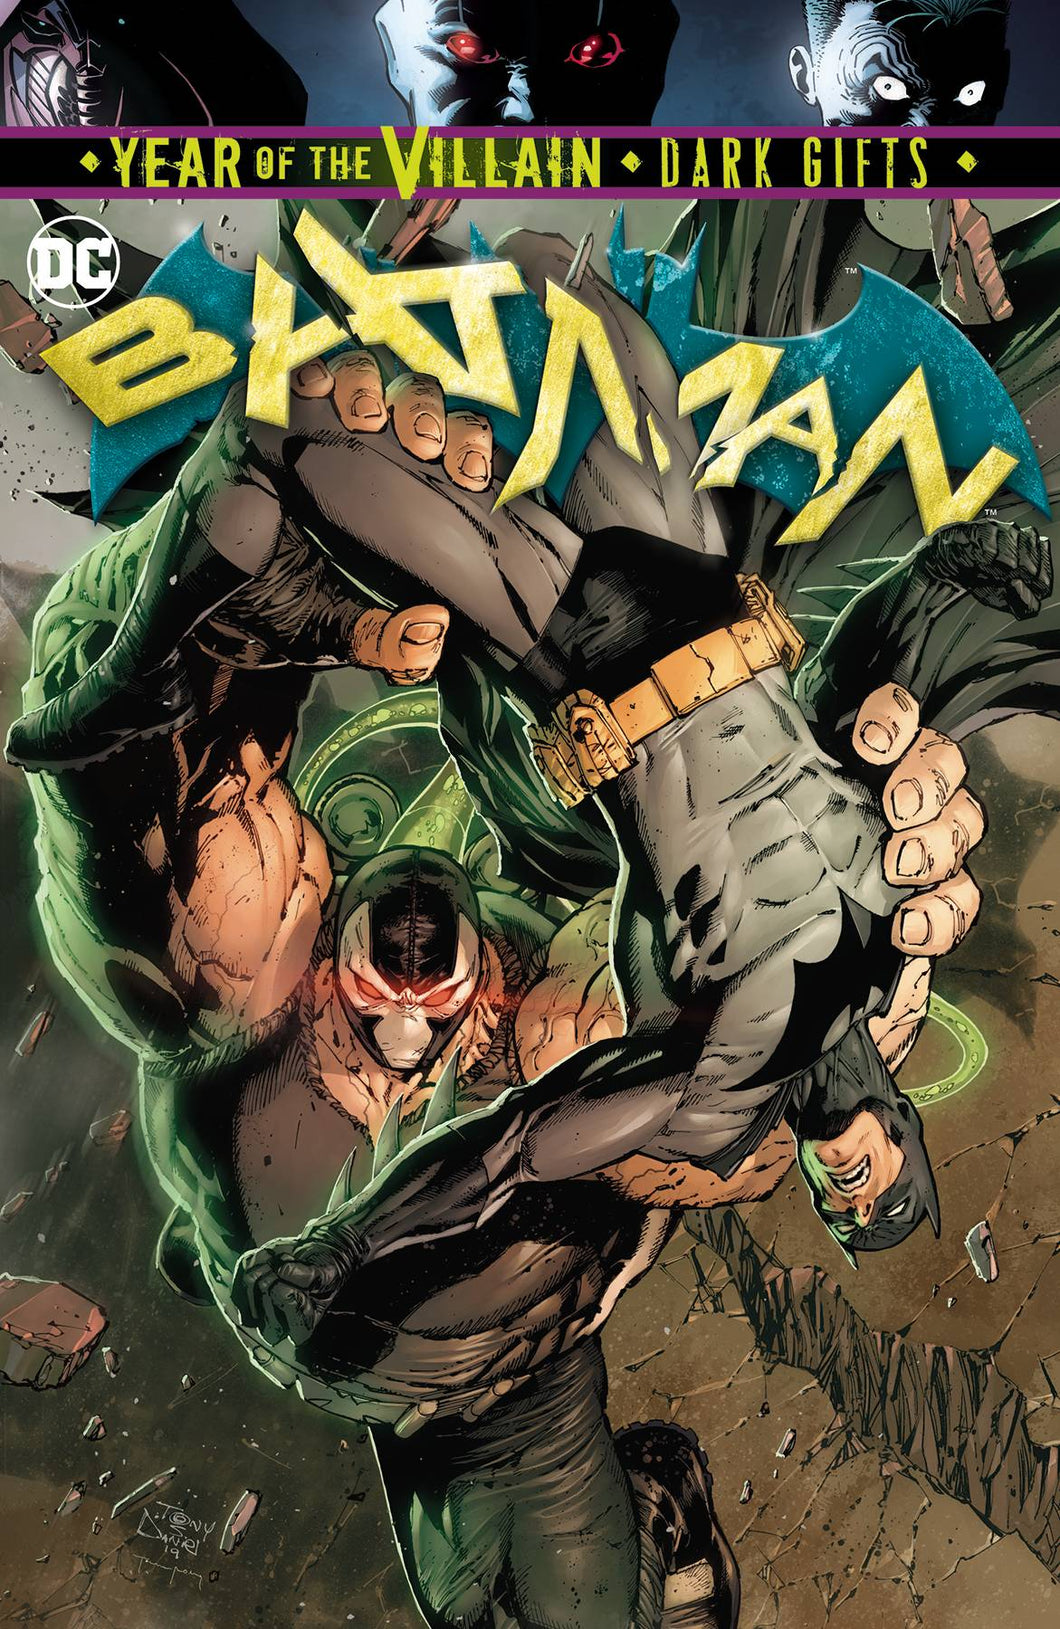 BATMAN #76 YOTV DARK GIFTS 08/07/19 FOC 07/15/19